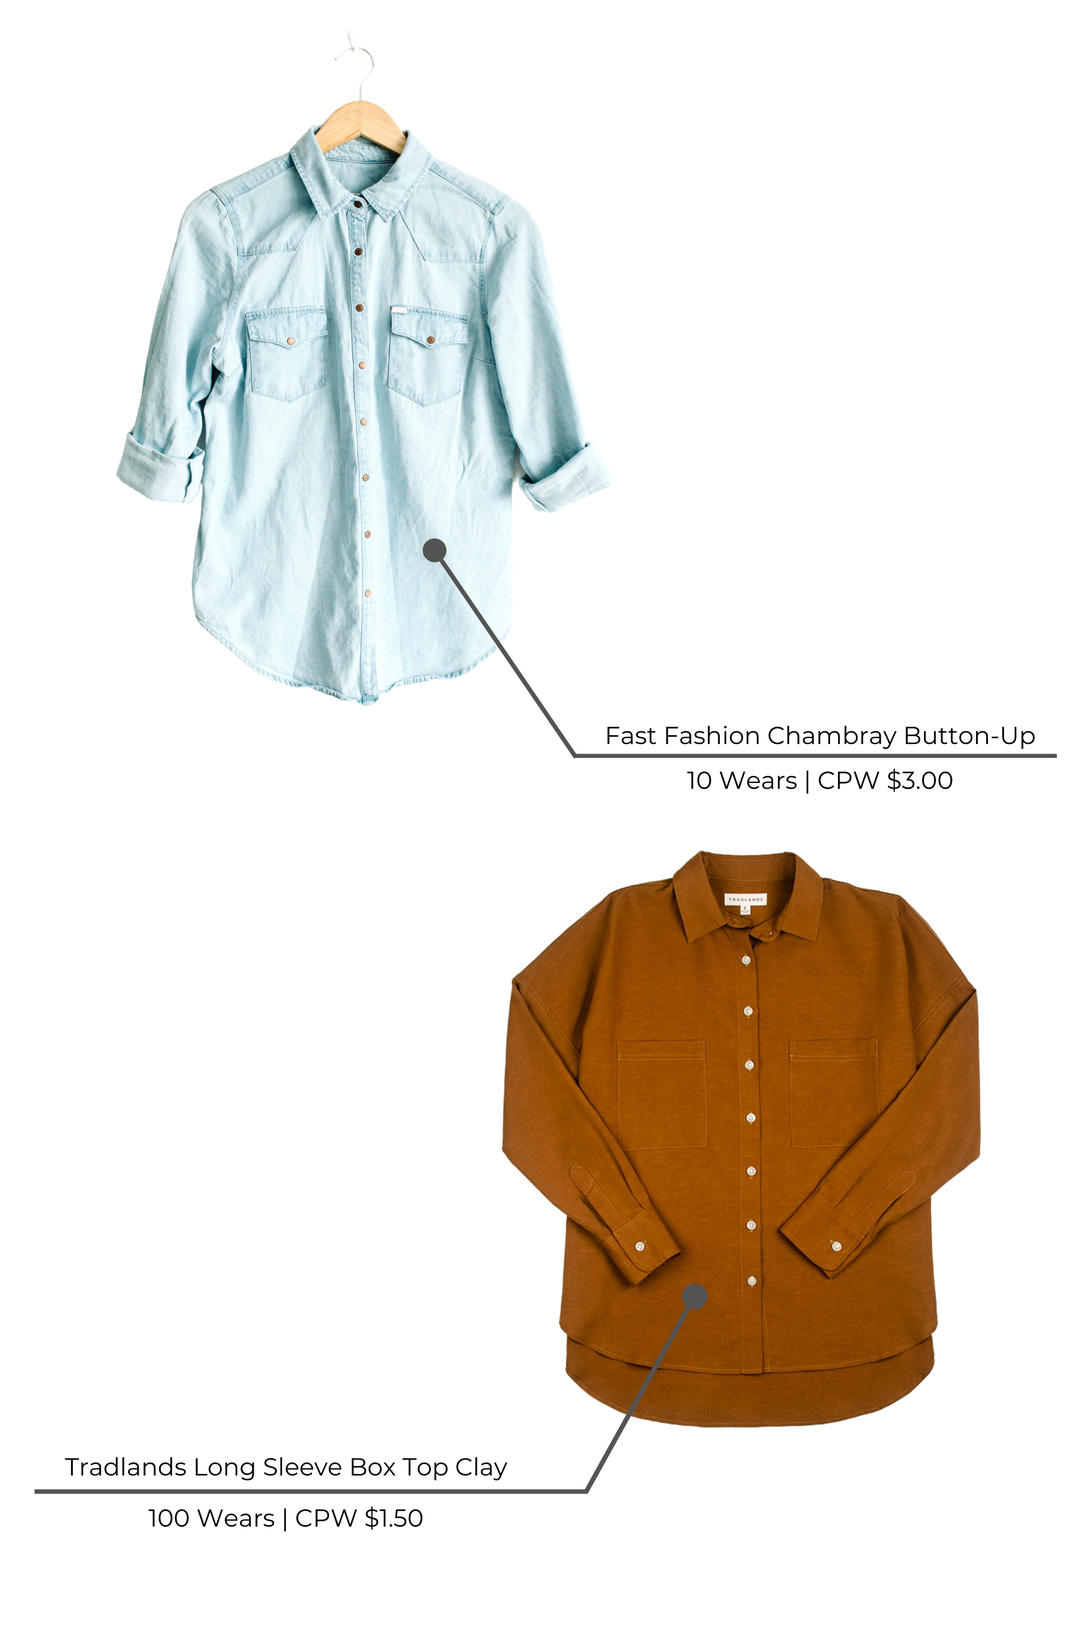 Cost Per Wear Comparison - Fast Fashion Button-up, Tradlands Button-up in Clay